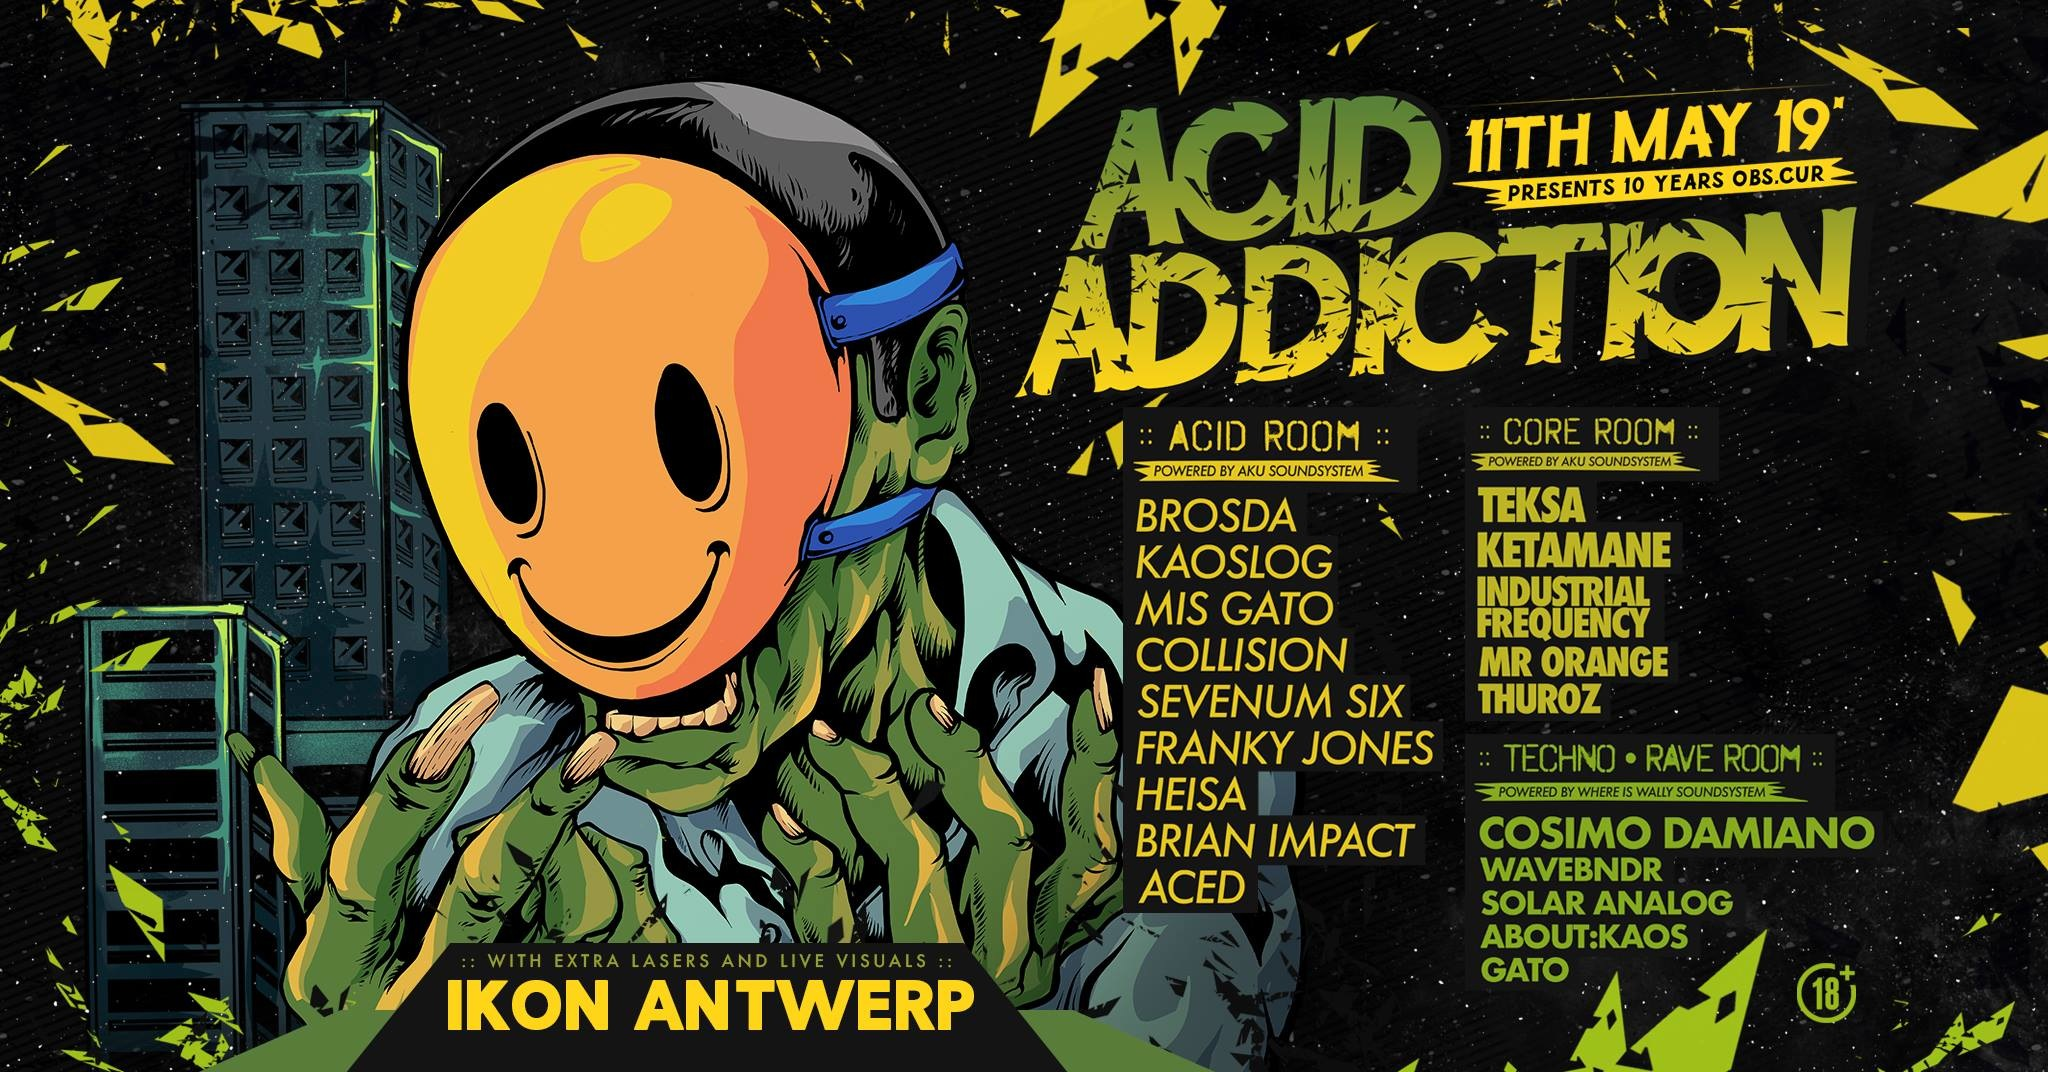 Acid Addiction - Tickets, line-up & info